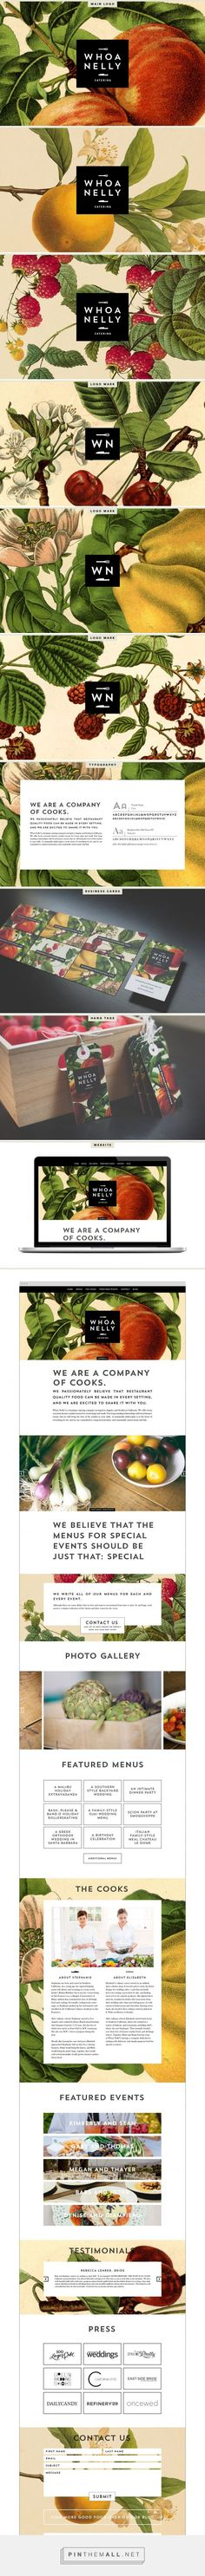 Whoa Nelly Catering Branding & Website by Cody Small | Fivestar Branding Agency – Design and Branding Agency & Curated Inspiration Gallery  #cateringbranding #branding #designinspiration #fivestarbrandingagency #webdesign